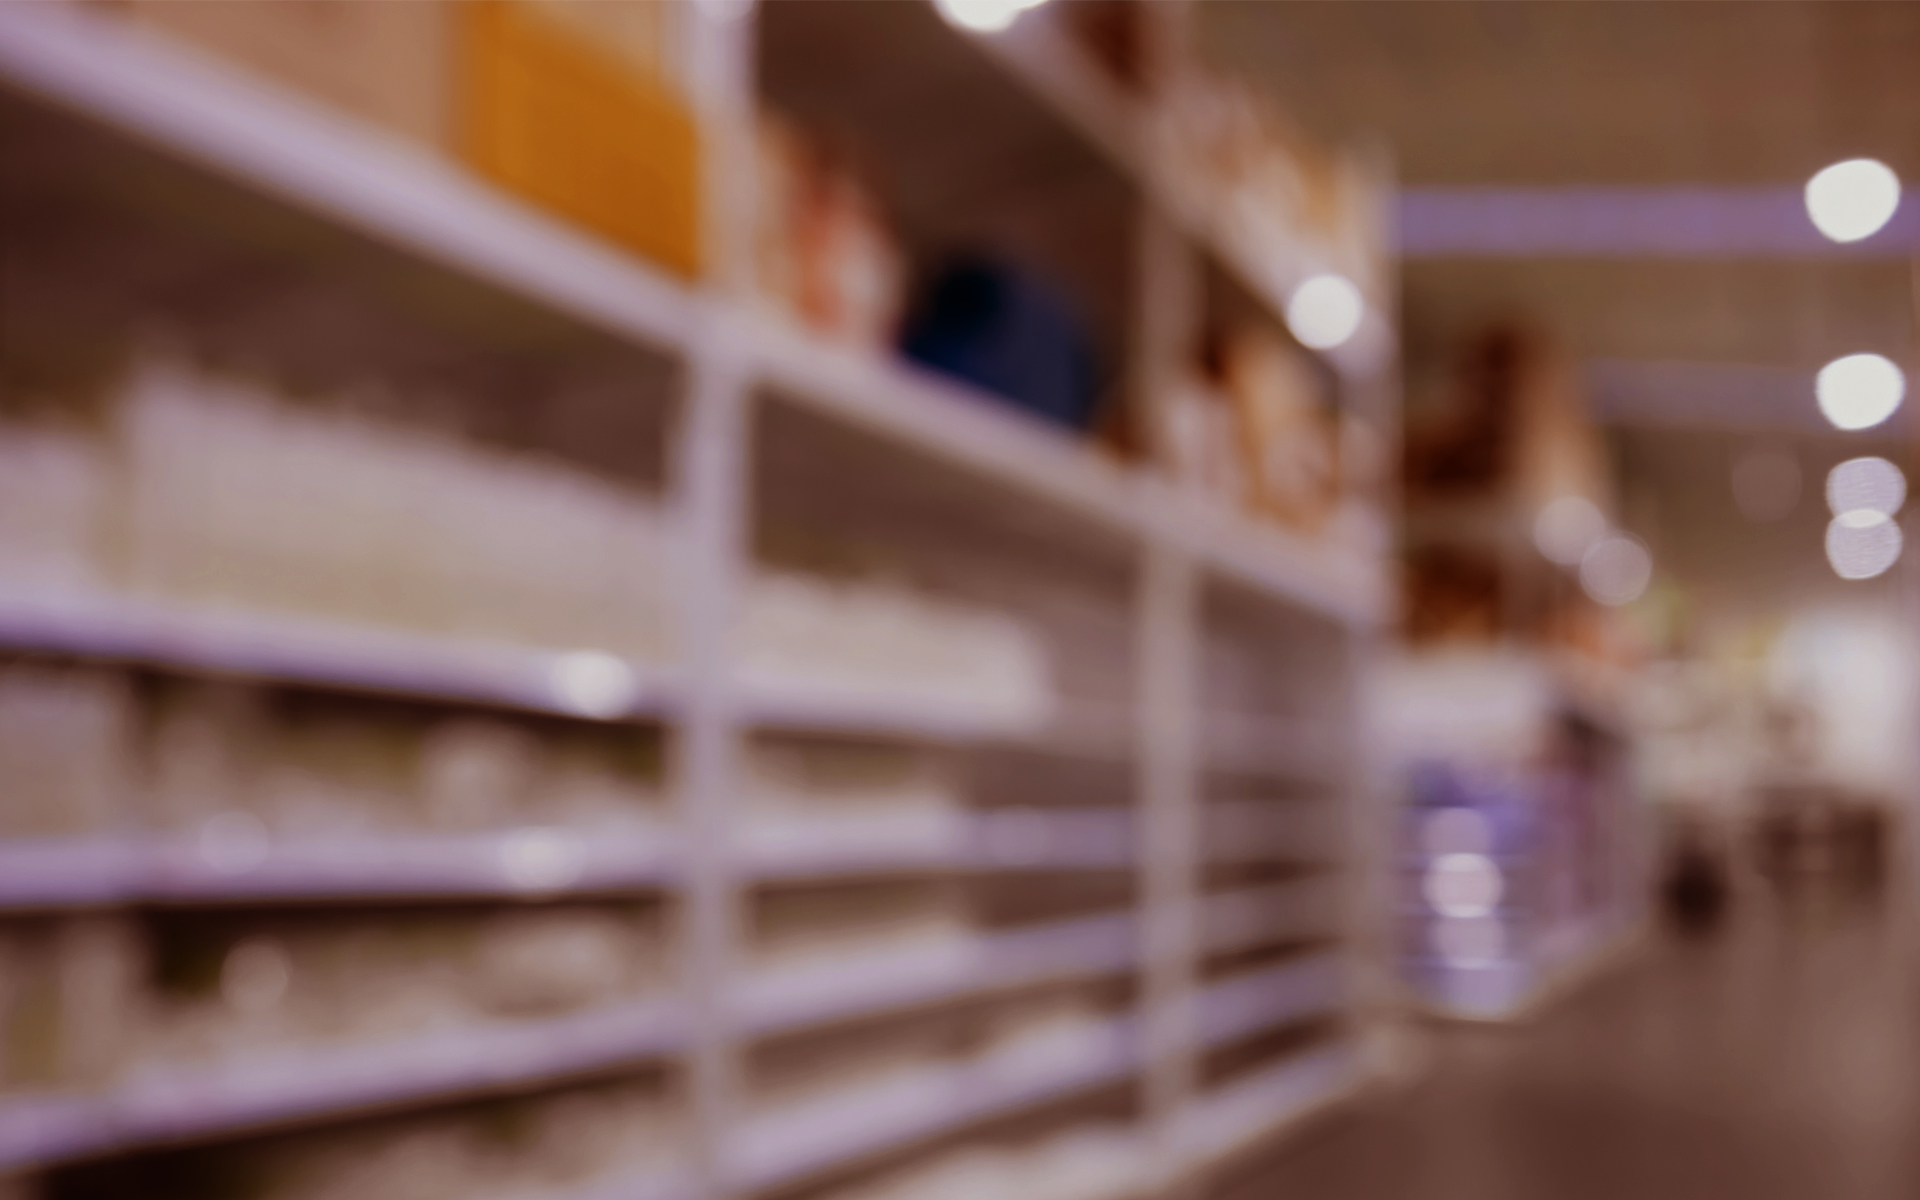 Blurred shelf storage in shop warehouse perspective background image